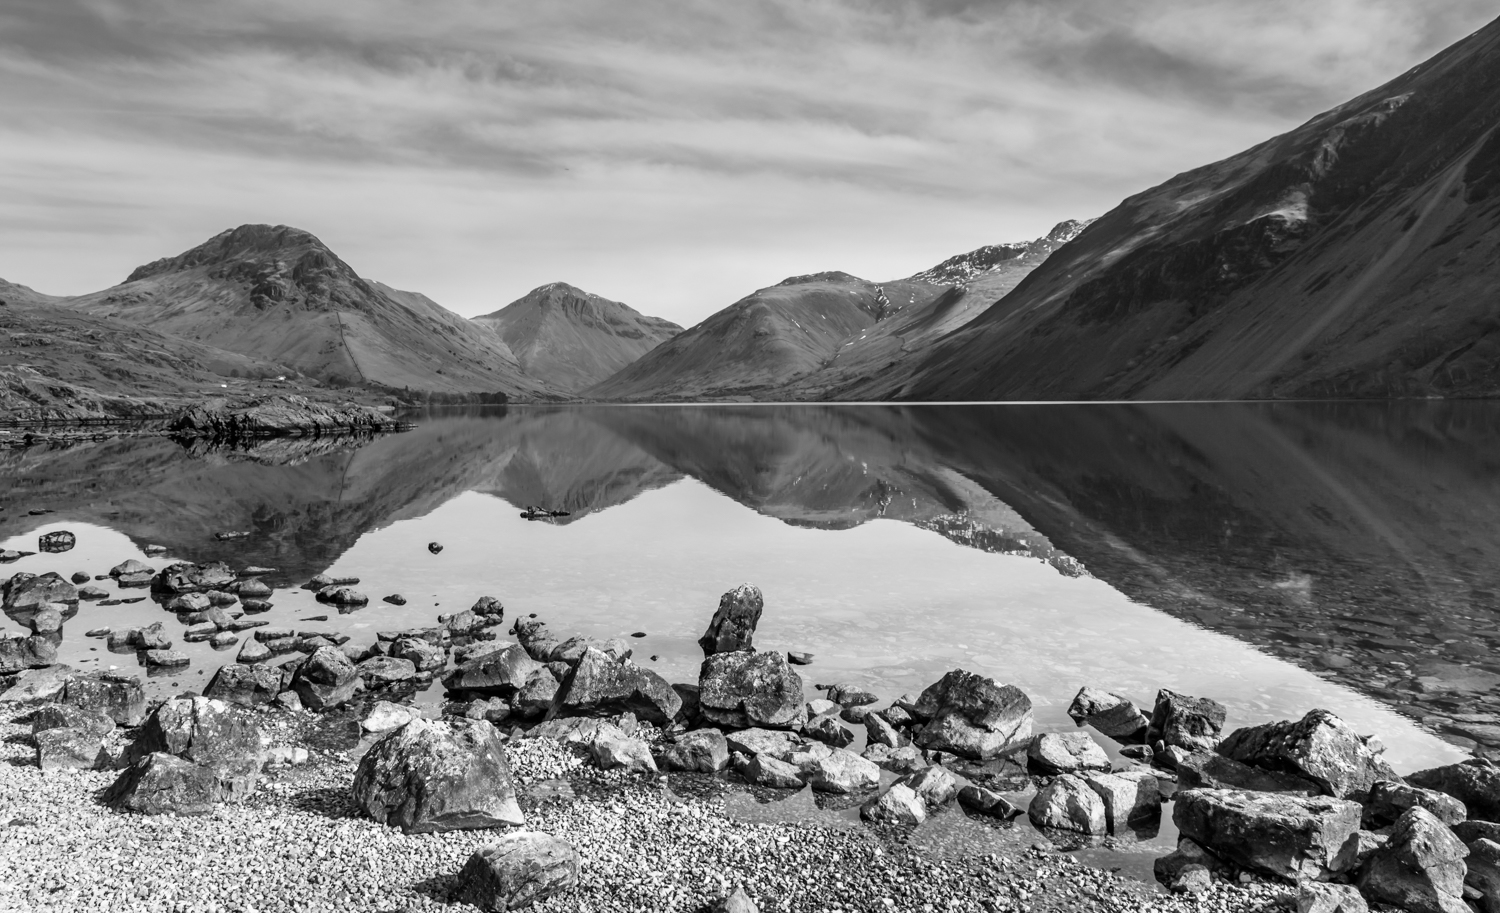 The English Lake District - Wastwater looking towards Wasdale Head